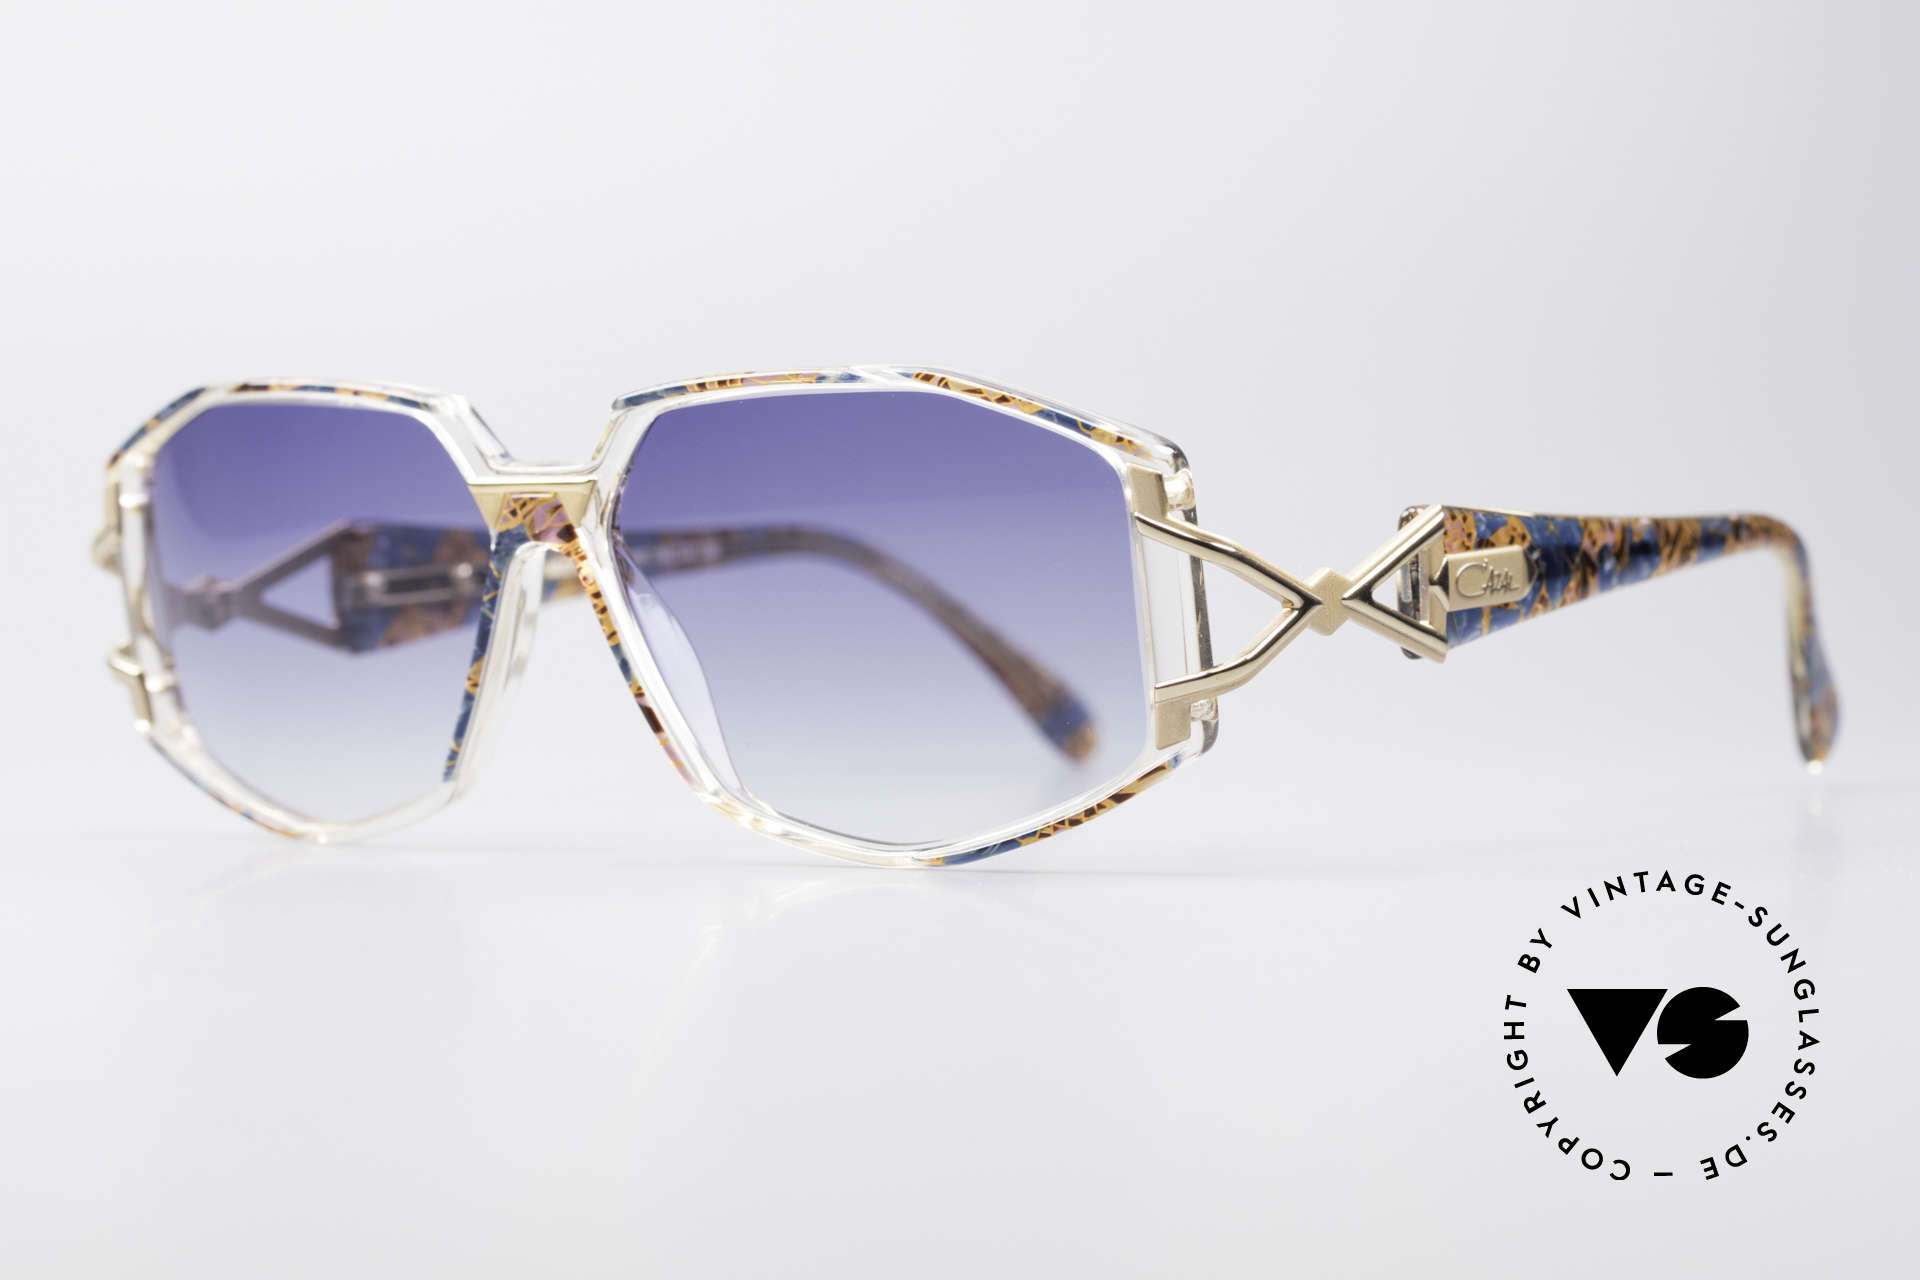 Cazal 368 90's Hip Hop Old School Shades, top-notch crafting & great durability, made in Germany, Made for Women